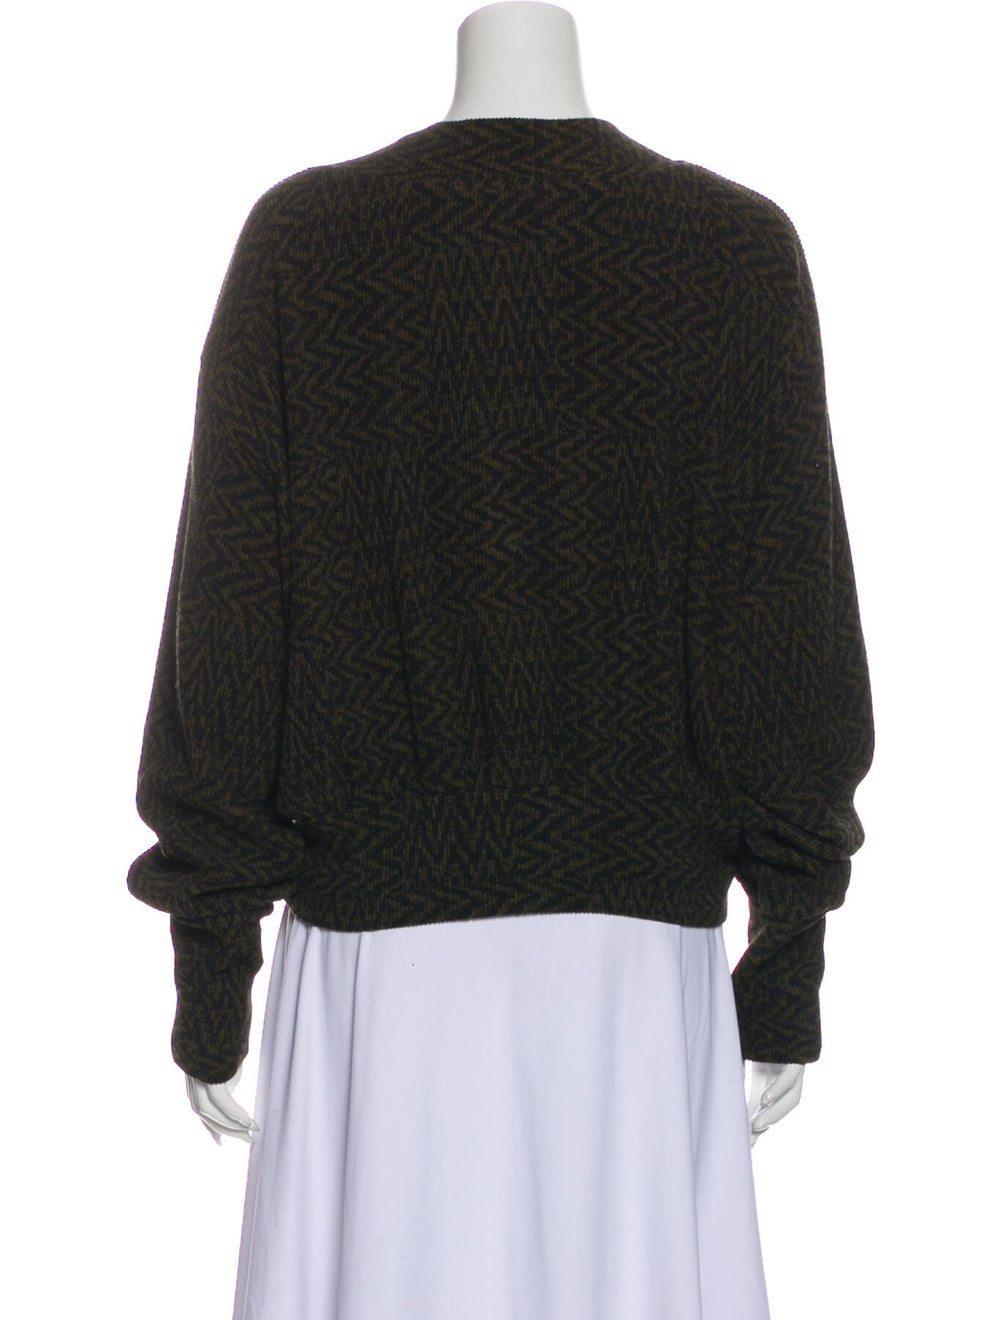 Beaufille V-Neck Sweater w/ Tags Green - image 3